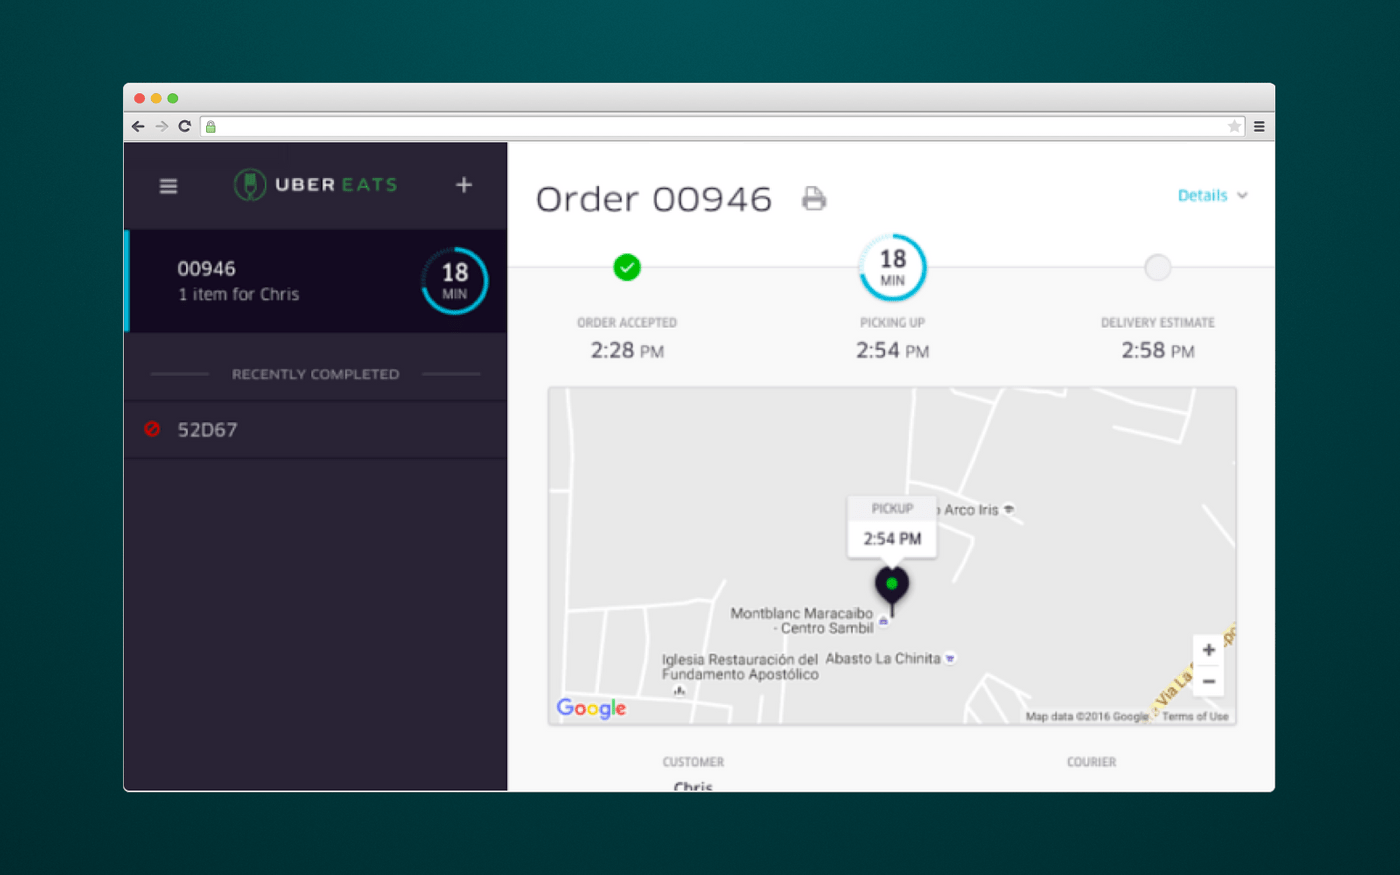 How eateries manage orders via UberEats admin panel